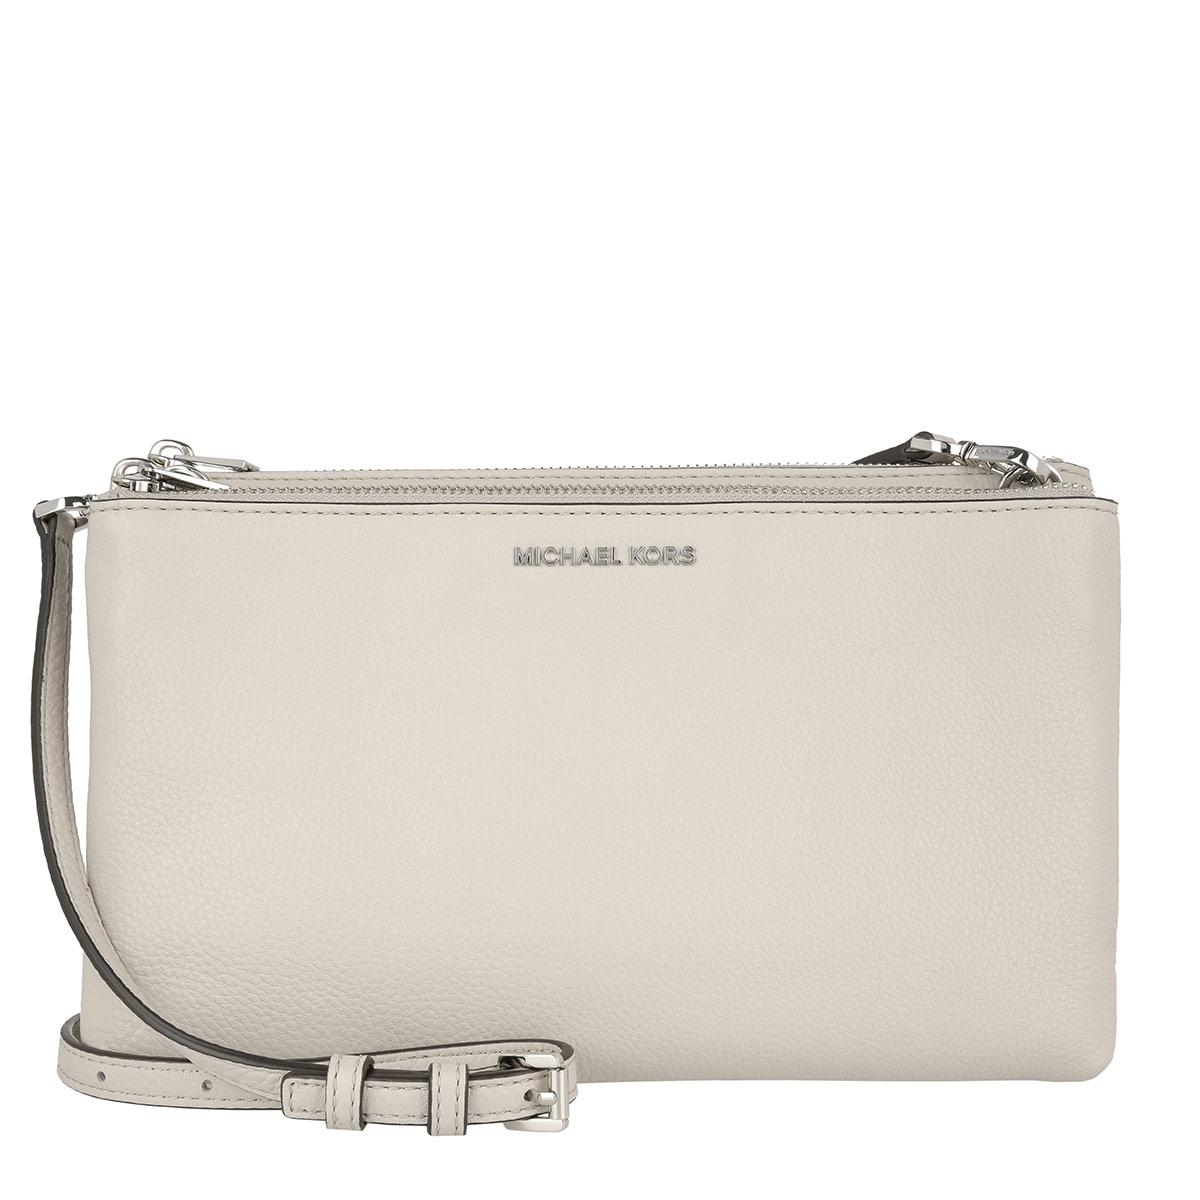 17edf0f0c6c5 Michael Kors Adele Double Zip Crossbody Leather Cement in Natural - Lyst